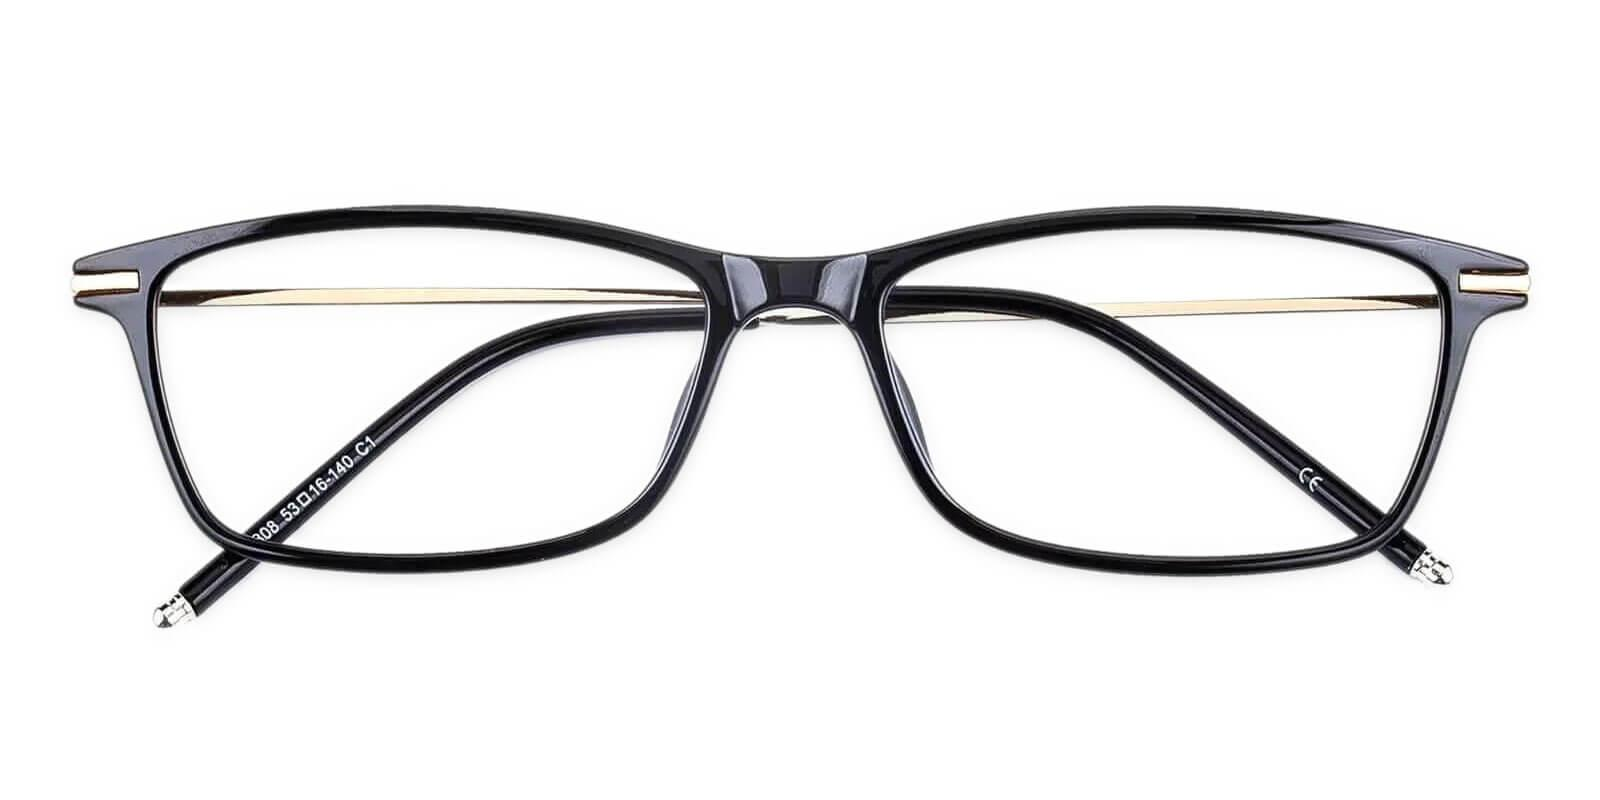 Maldives Black TR Lightweight , UniversalBridgeFit , Eyeglasses Frames from ABBE Glasses